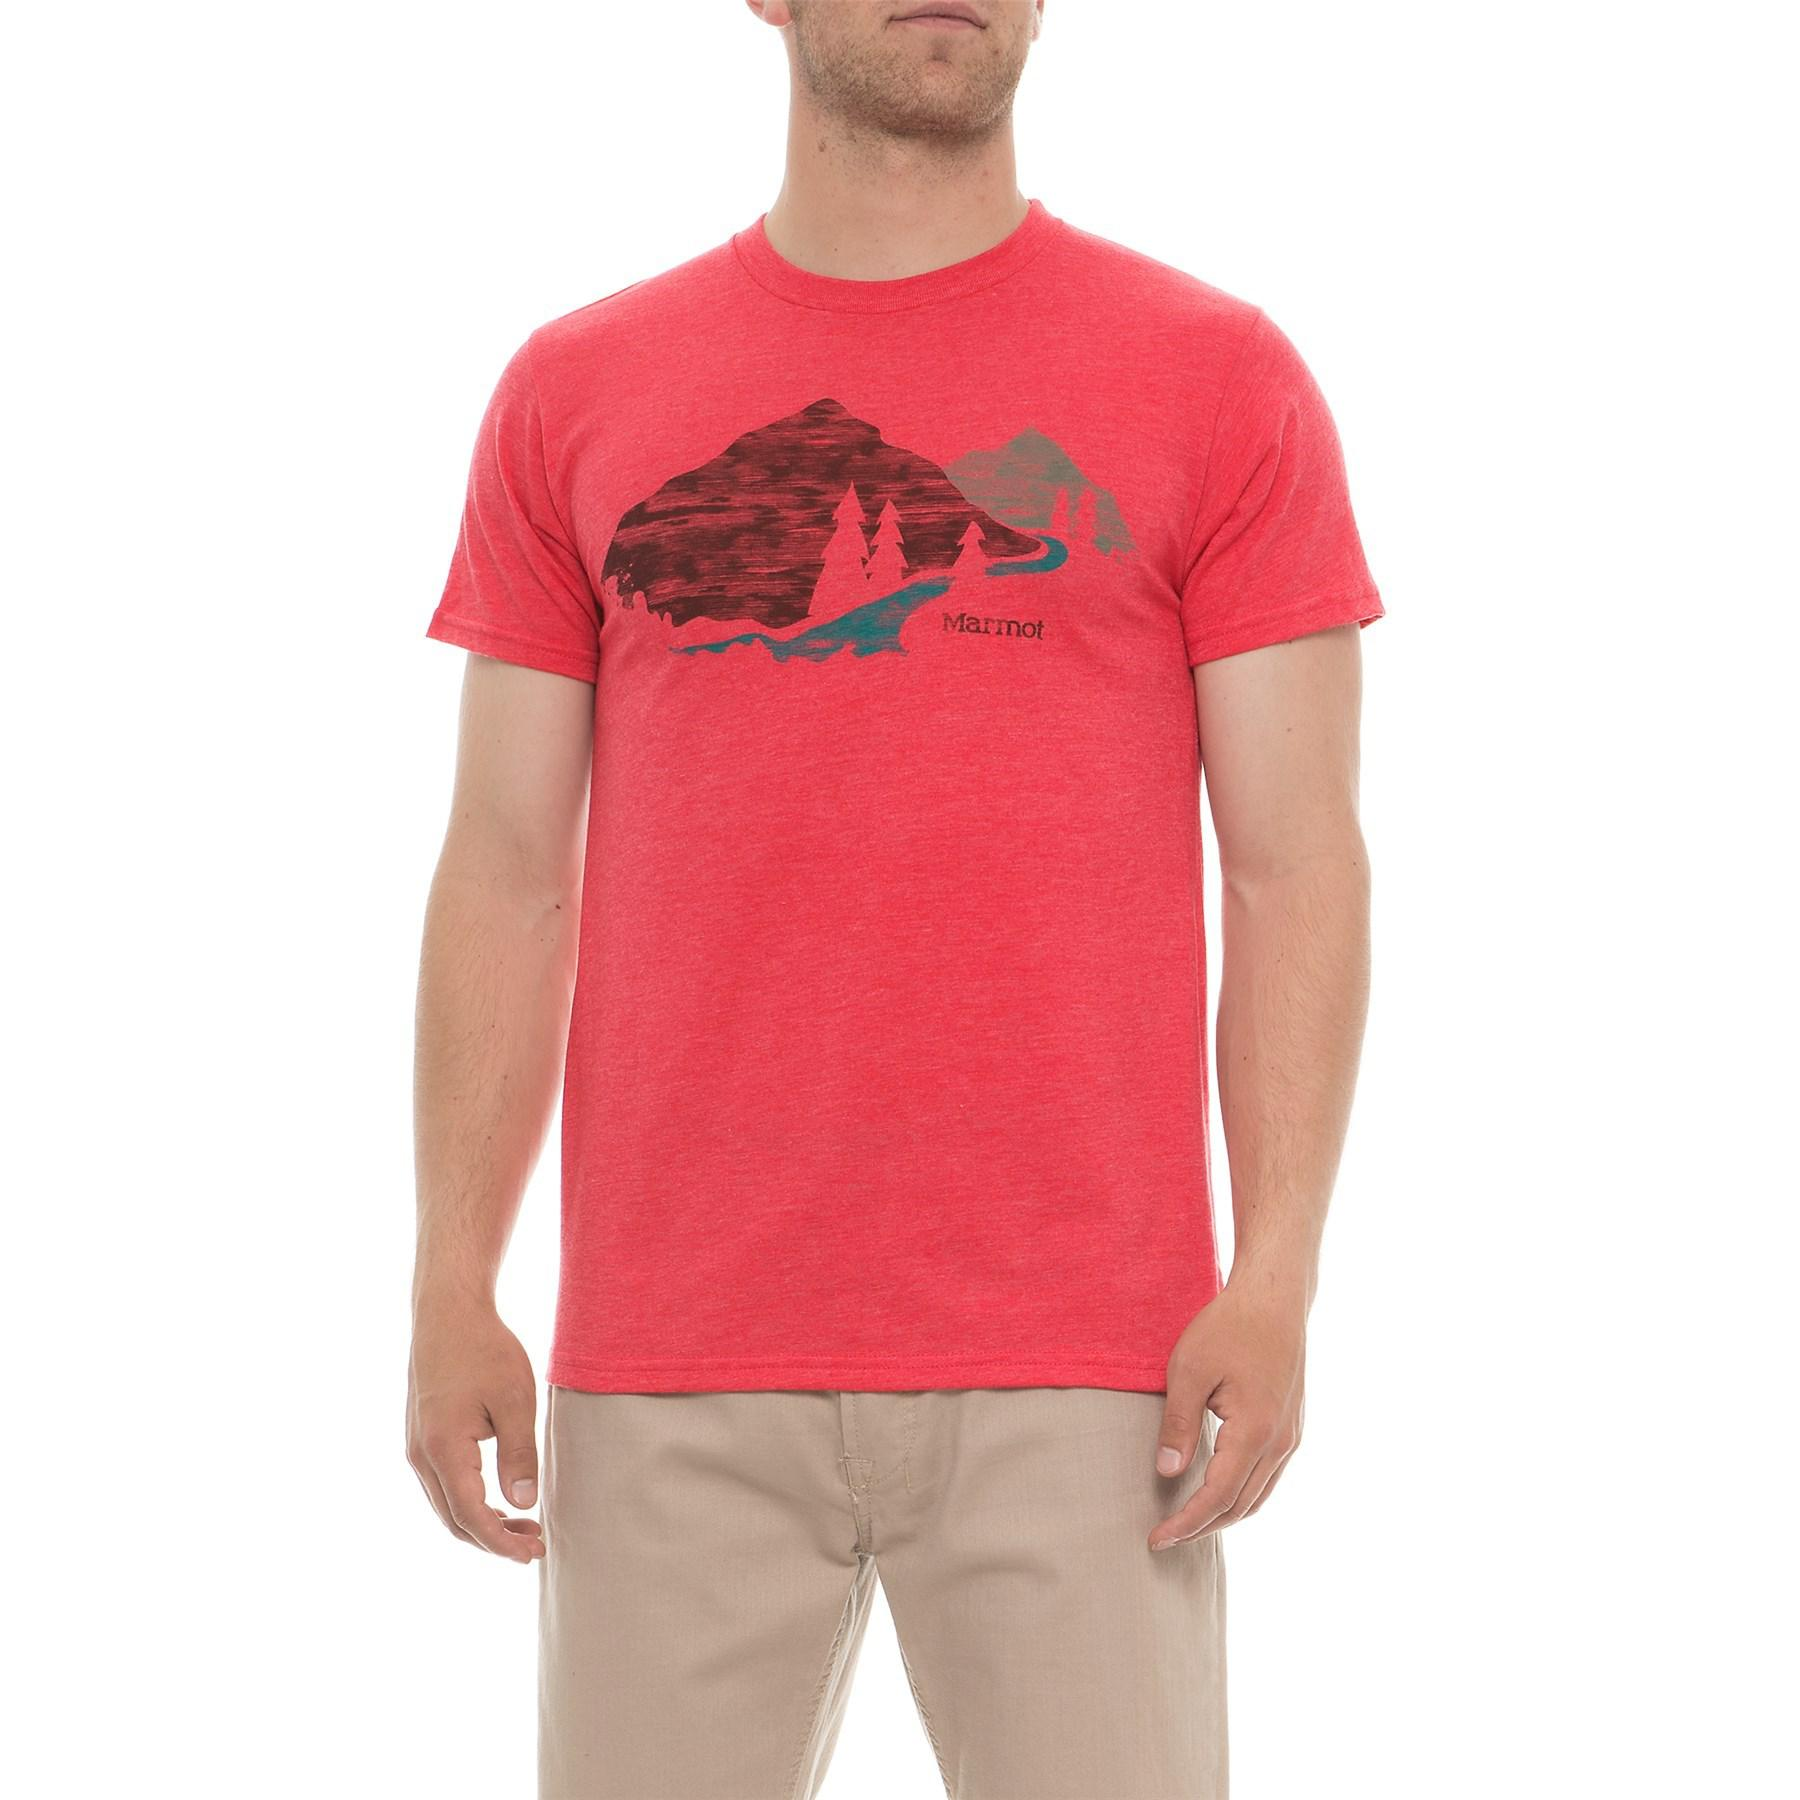 new cheap biggest discount best service Marmot Red Heather Tread Lightly T-shirt for men